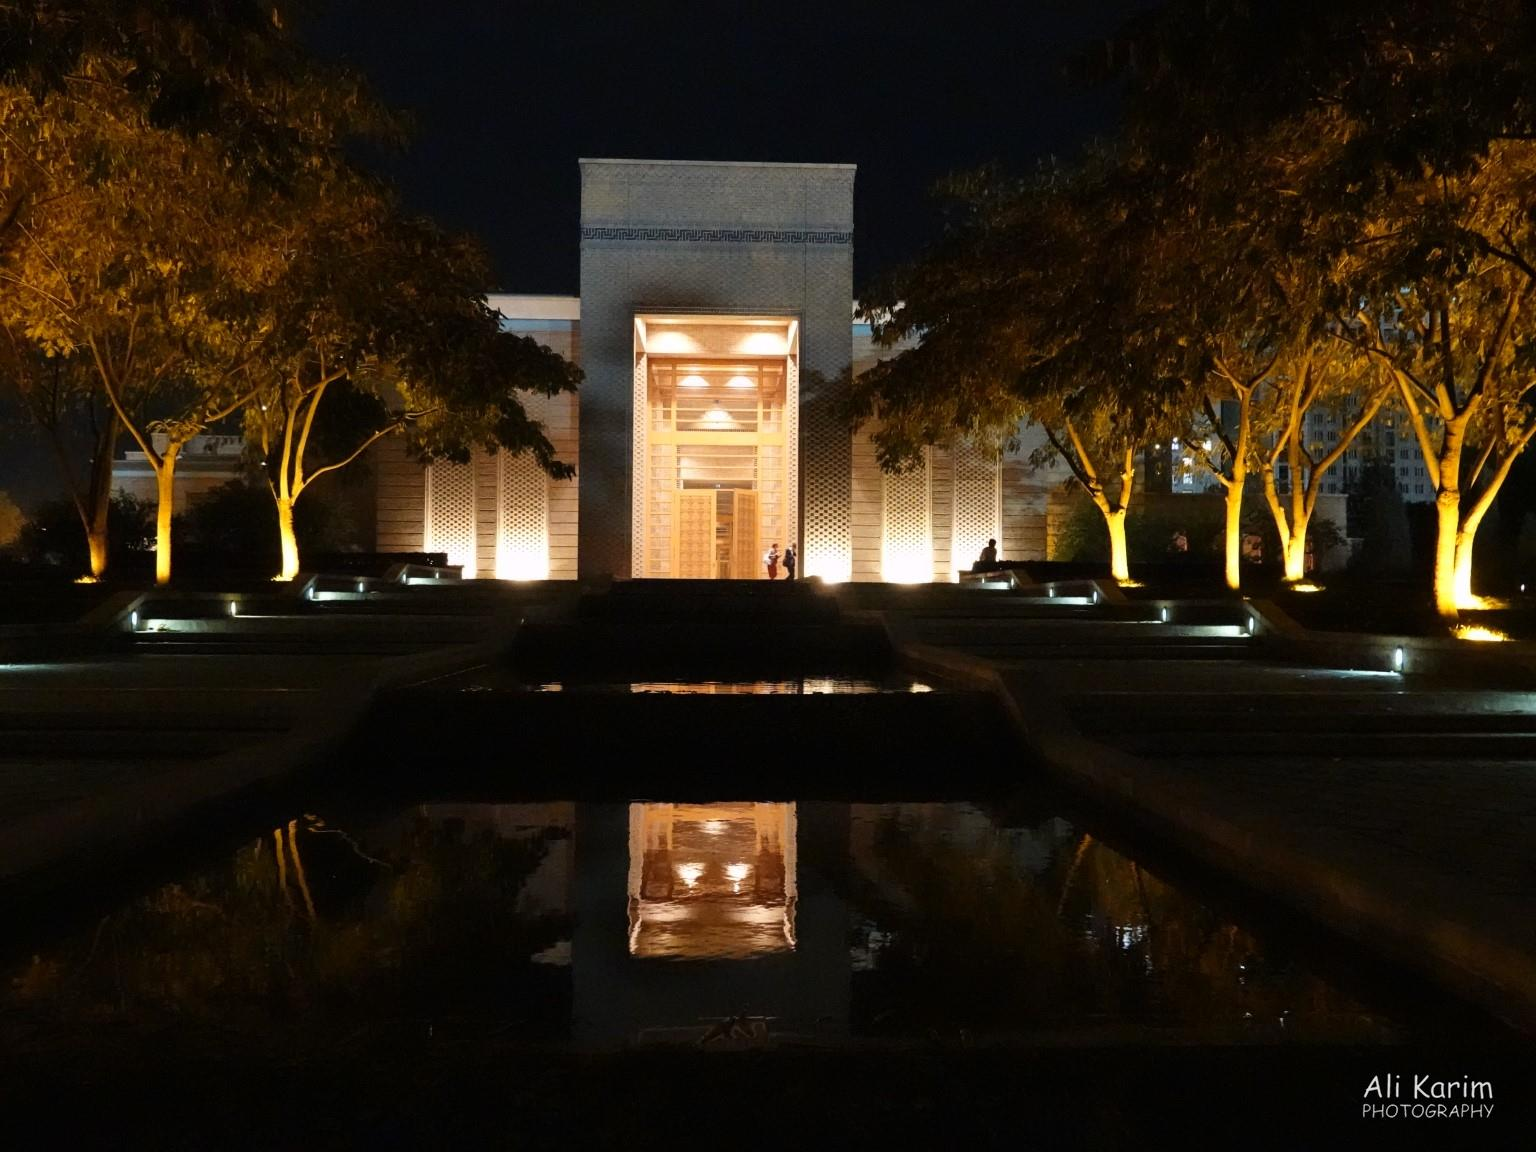 Dushanbe, Tajikistan Entrance of the imposing Center at night, with reflective water gardens